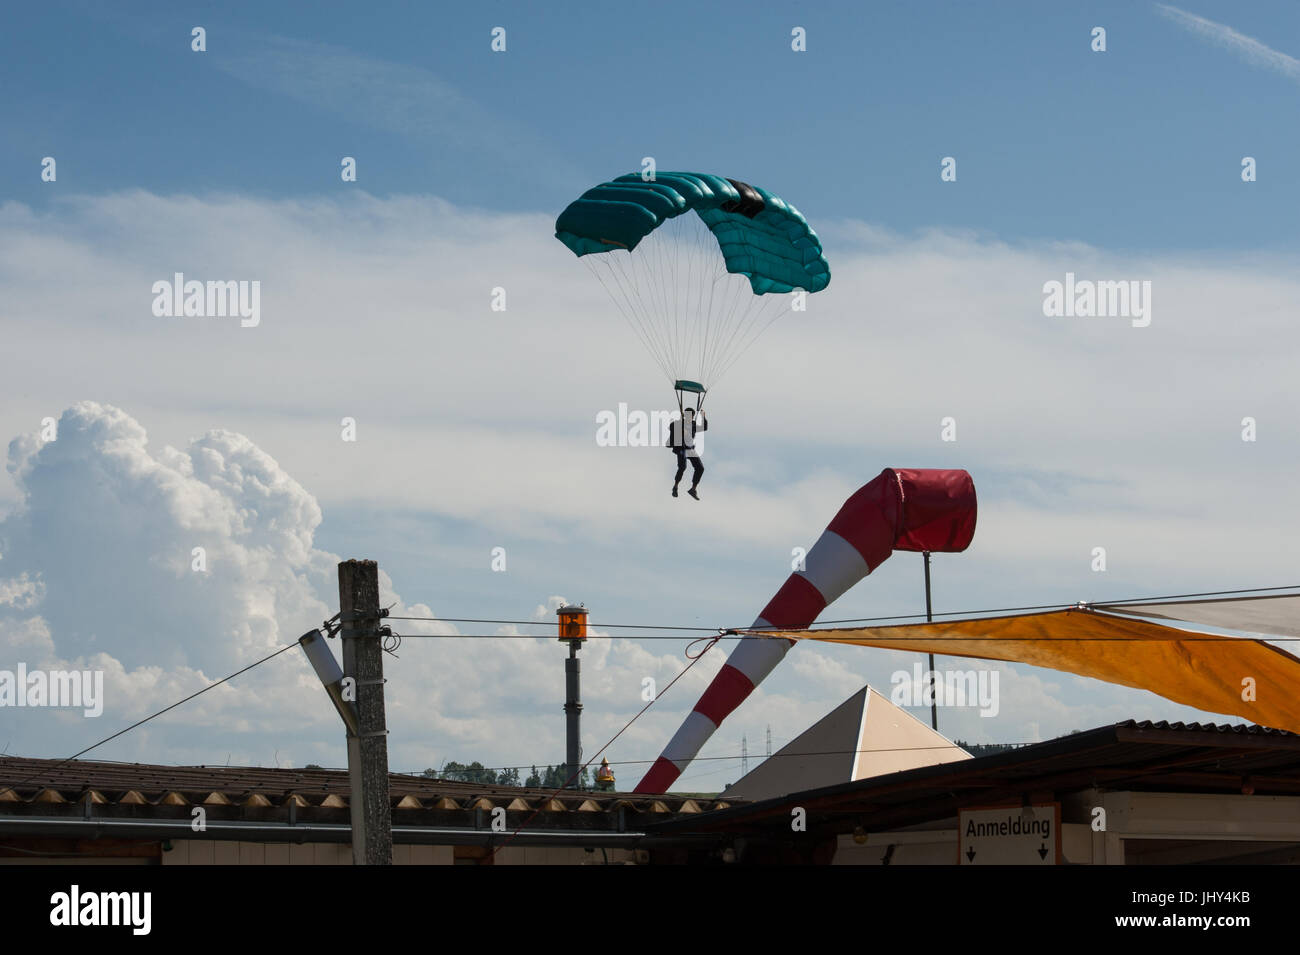 A student skydiver on final approach for his landing at Beromunster, Switzerland - Stock Image